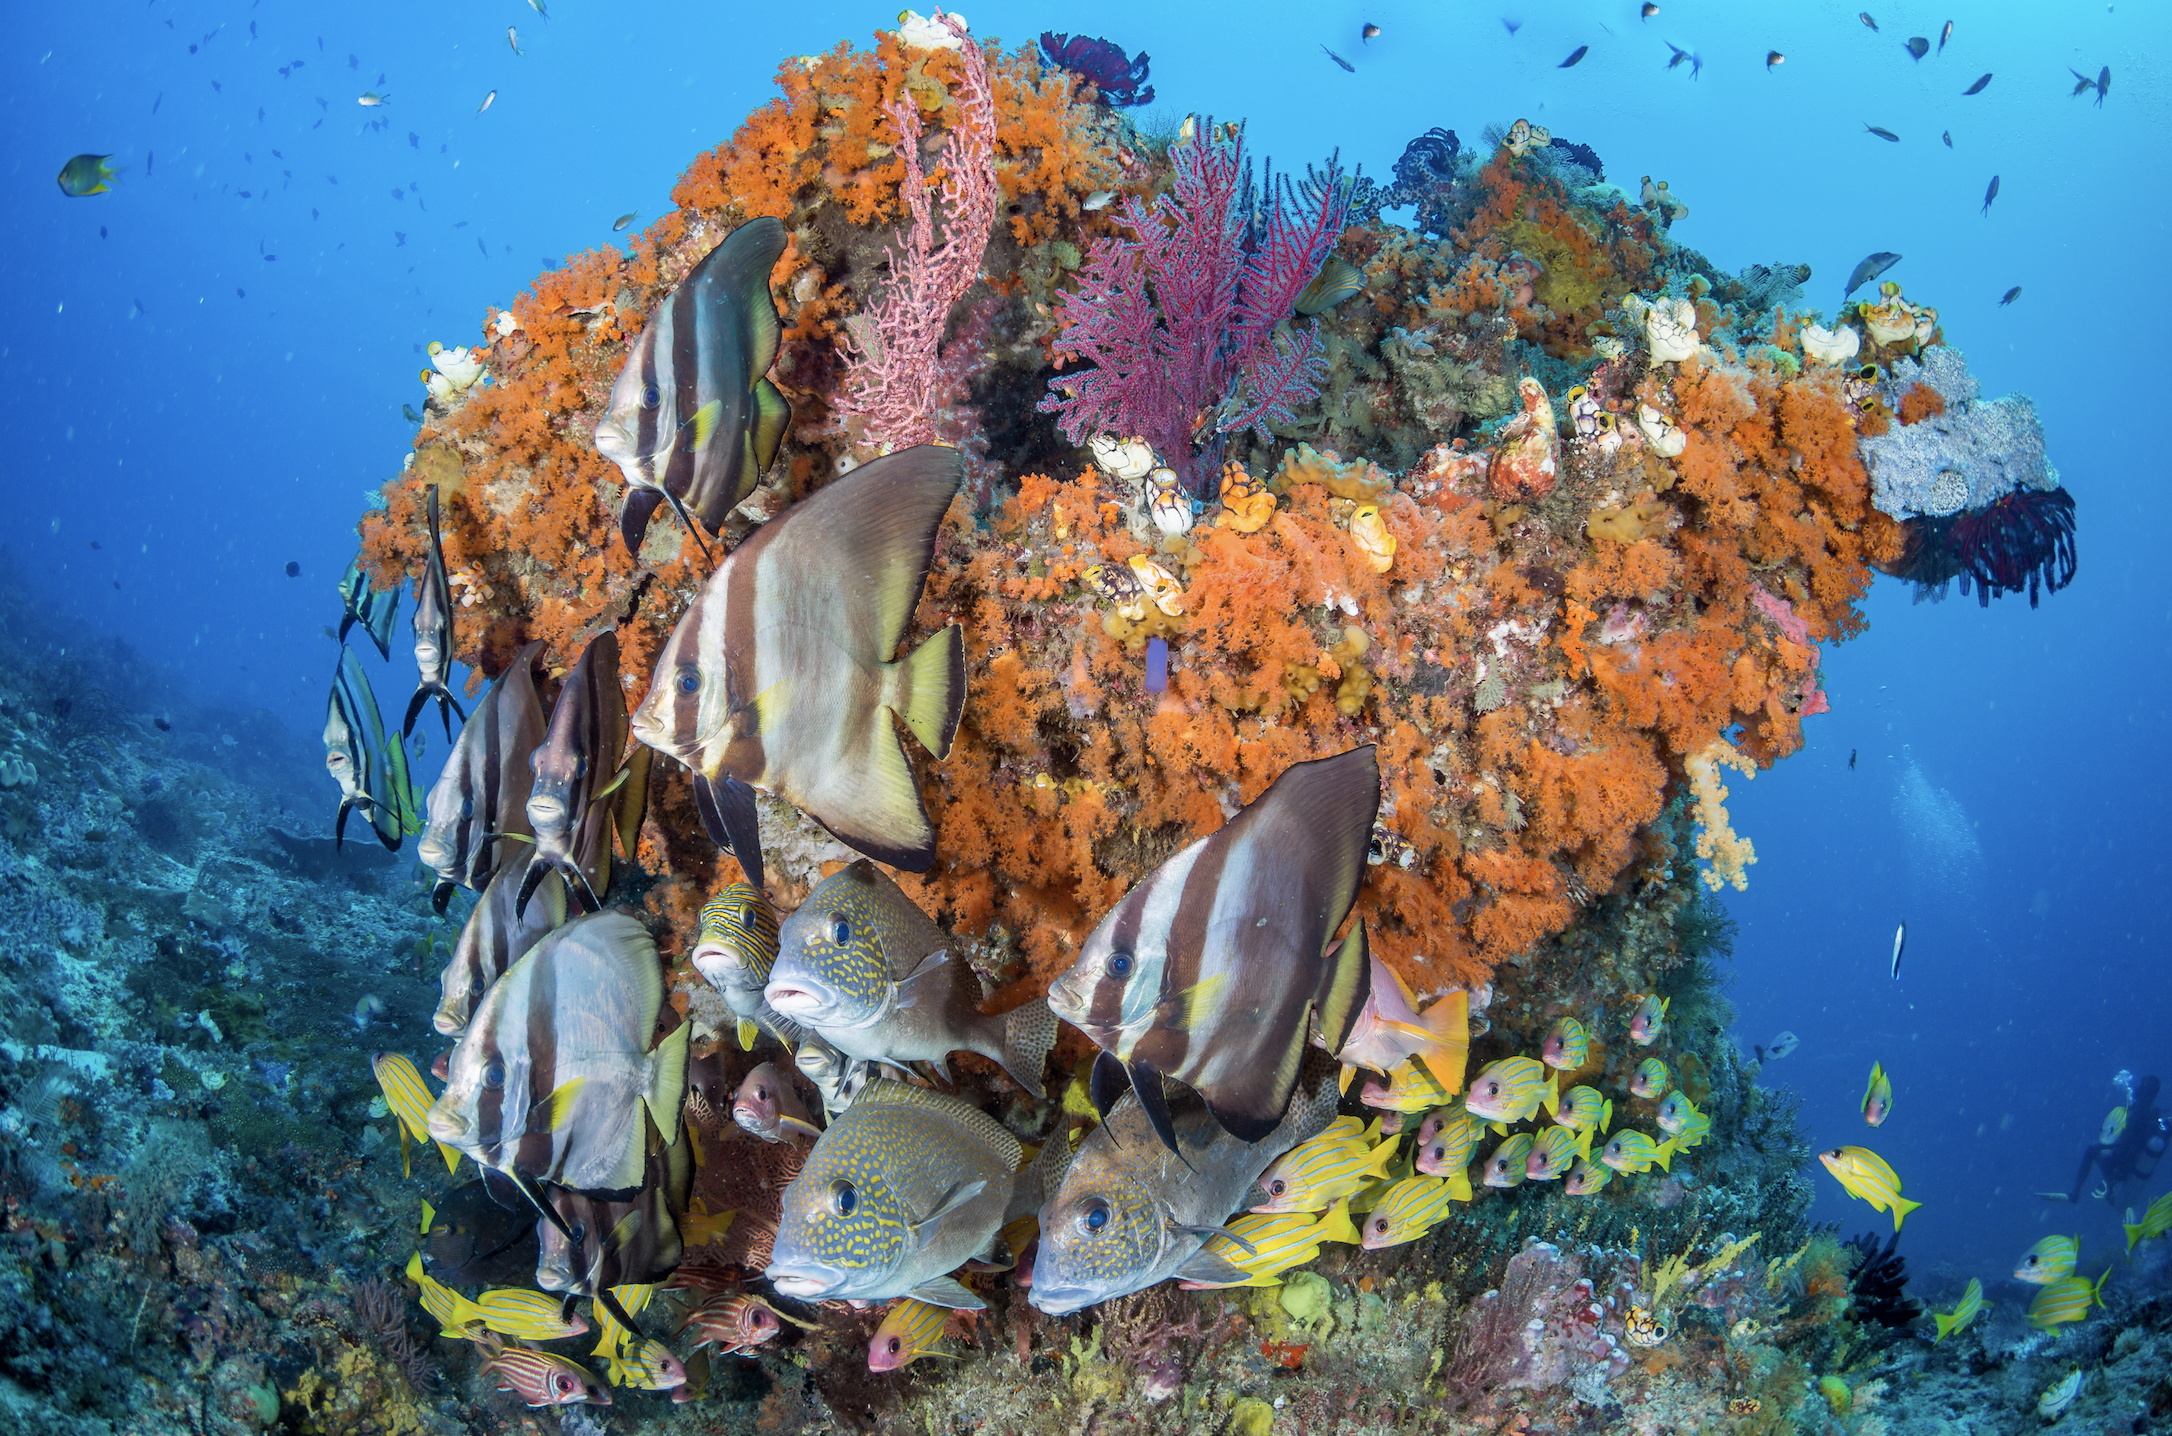 ROCK COVERED IN LIFE credit: grant thomas / CORAL REEF IMAGE BANK